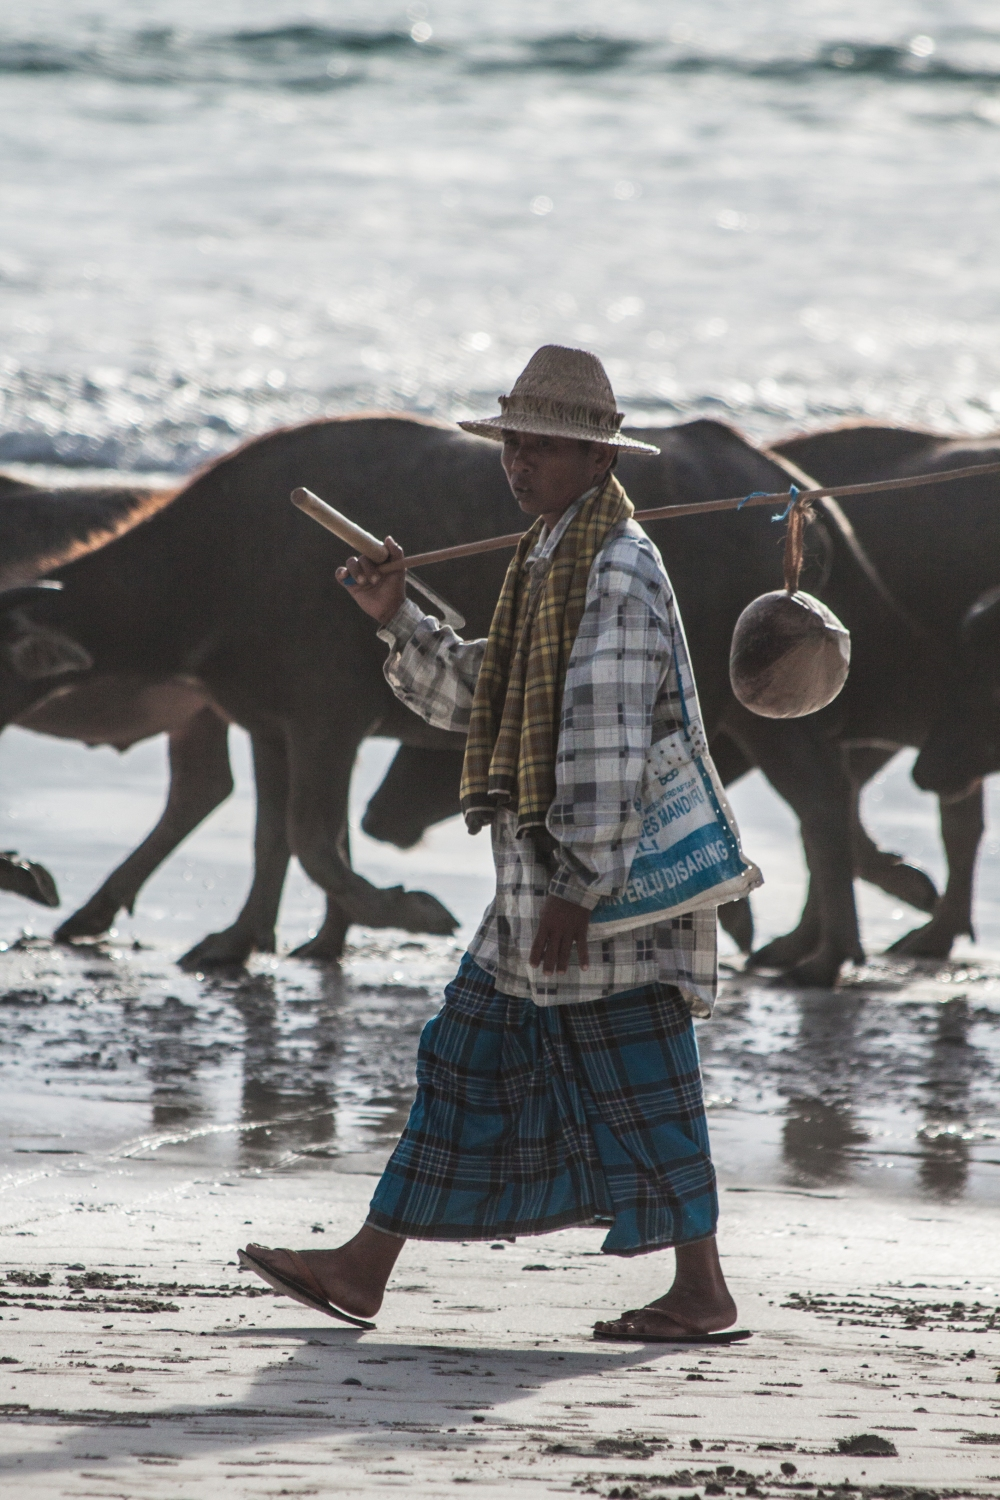 Buffalo_Farmer_lombok_beach_Travel_Photographer